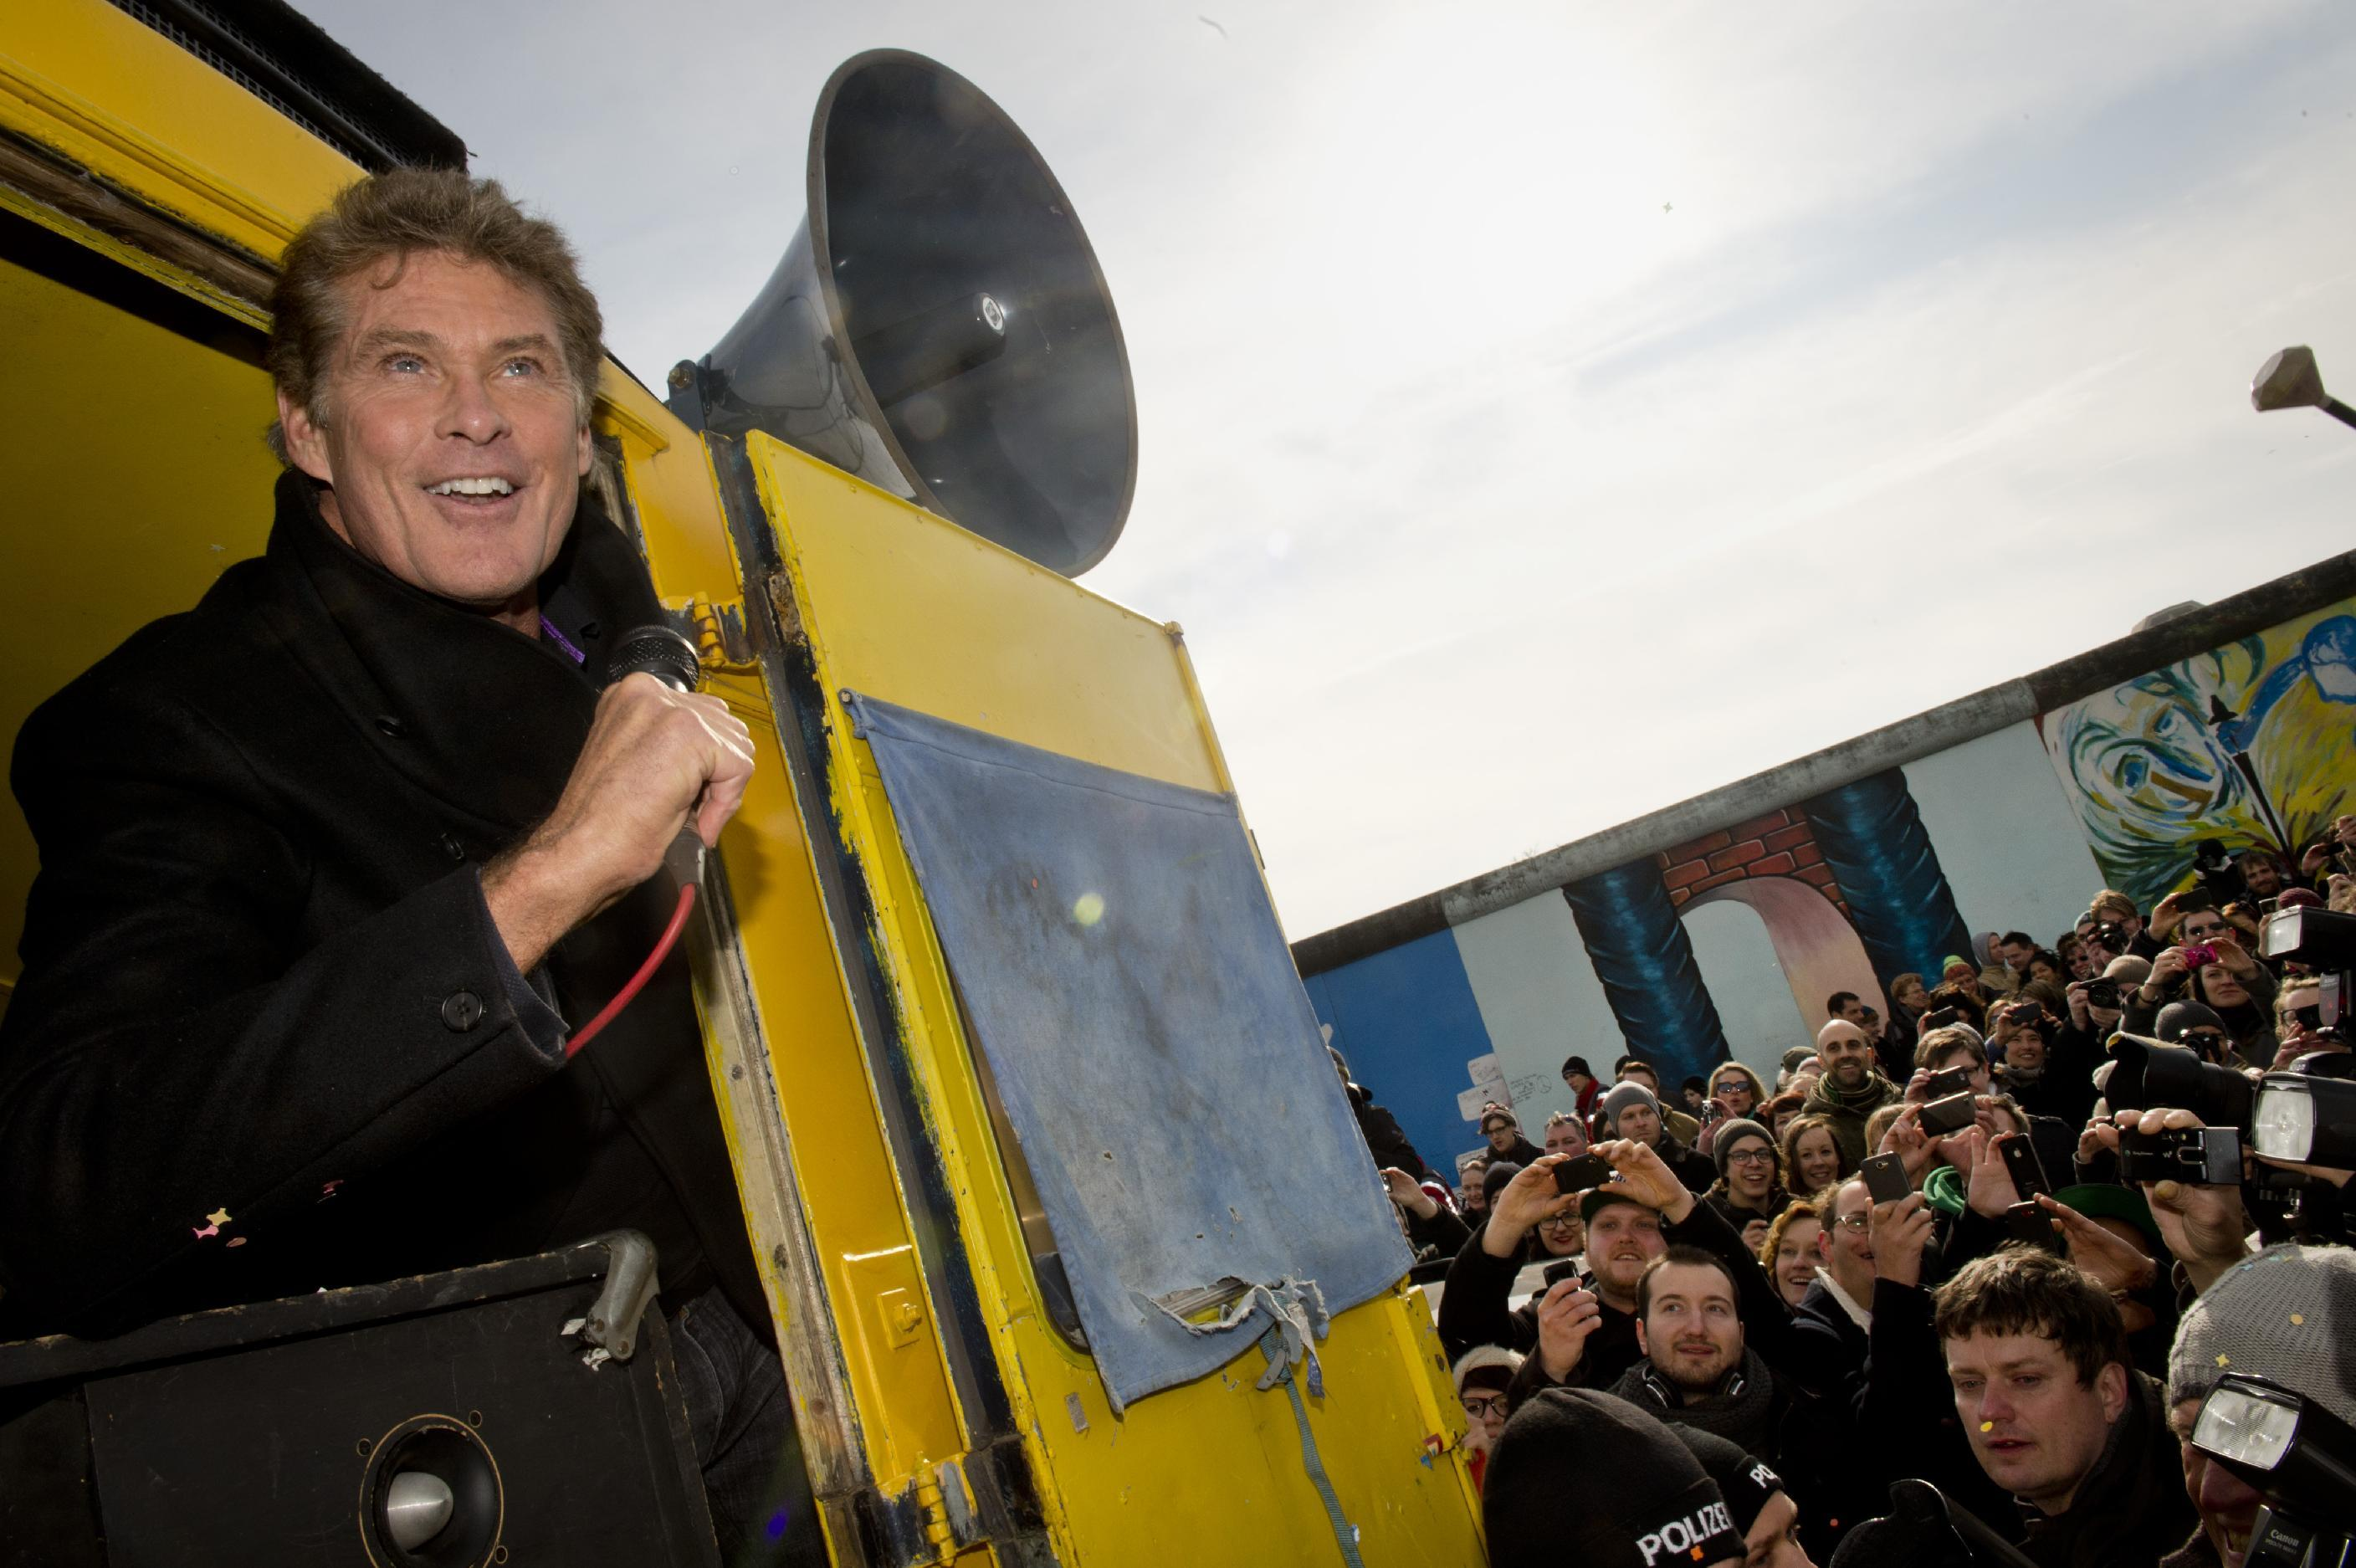 Hasselhoff to rock out 2014 at Berlin's Brandenburg Gate